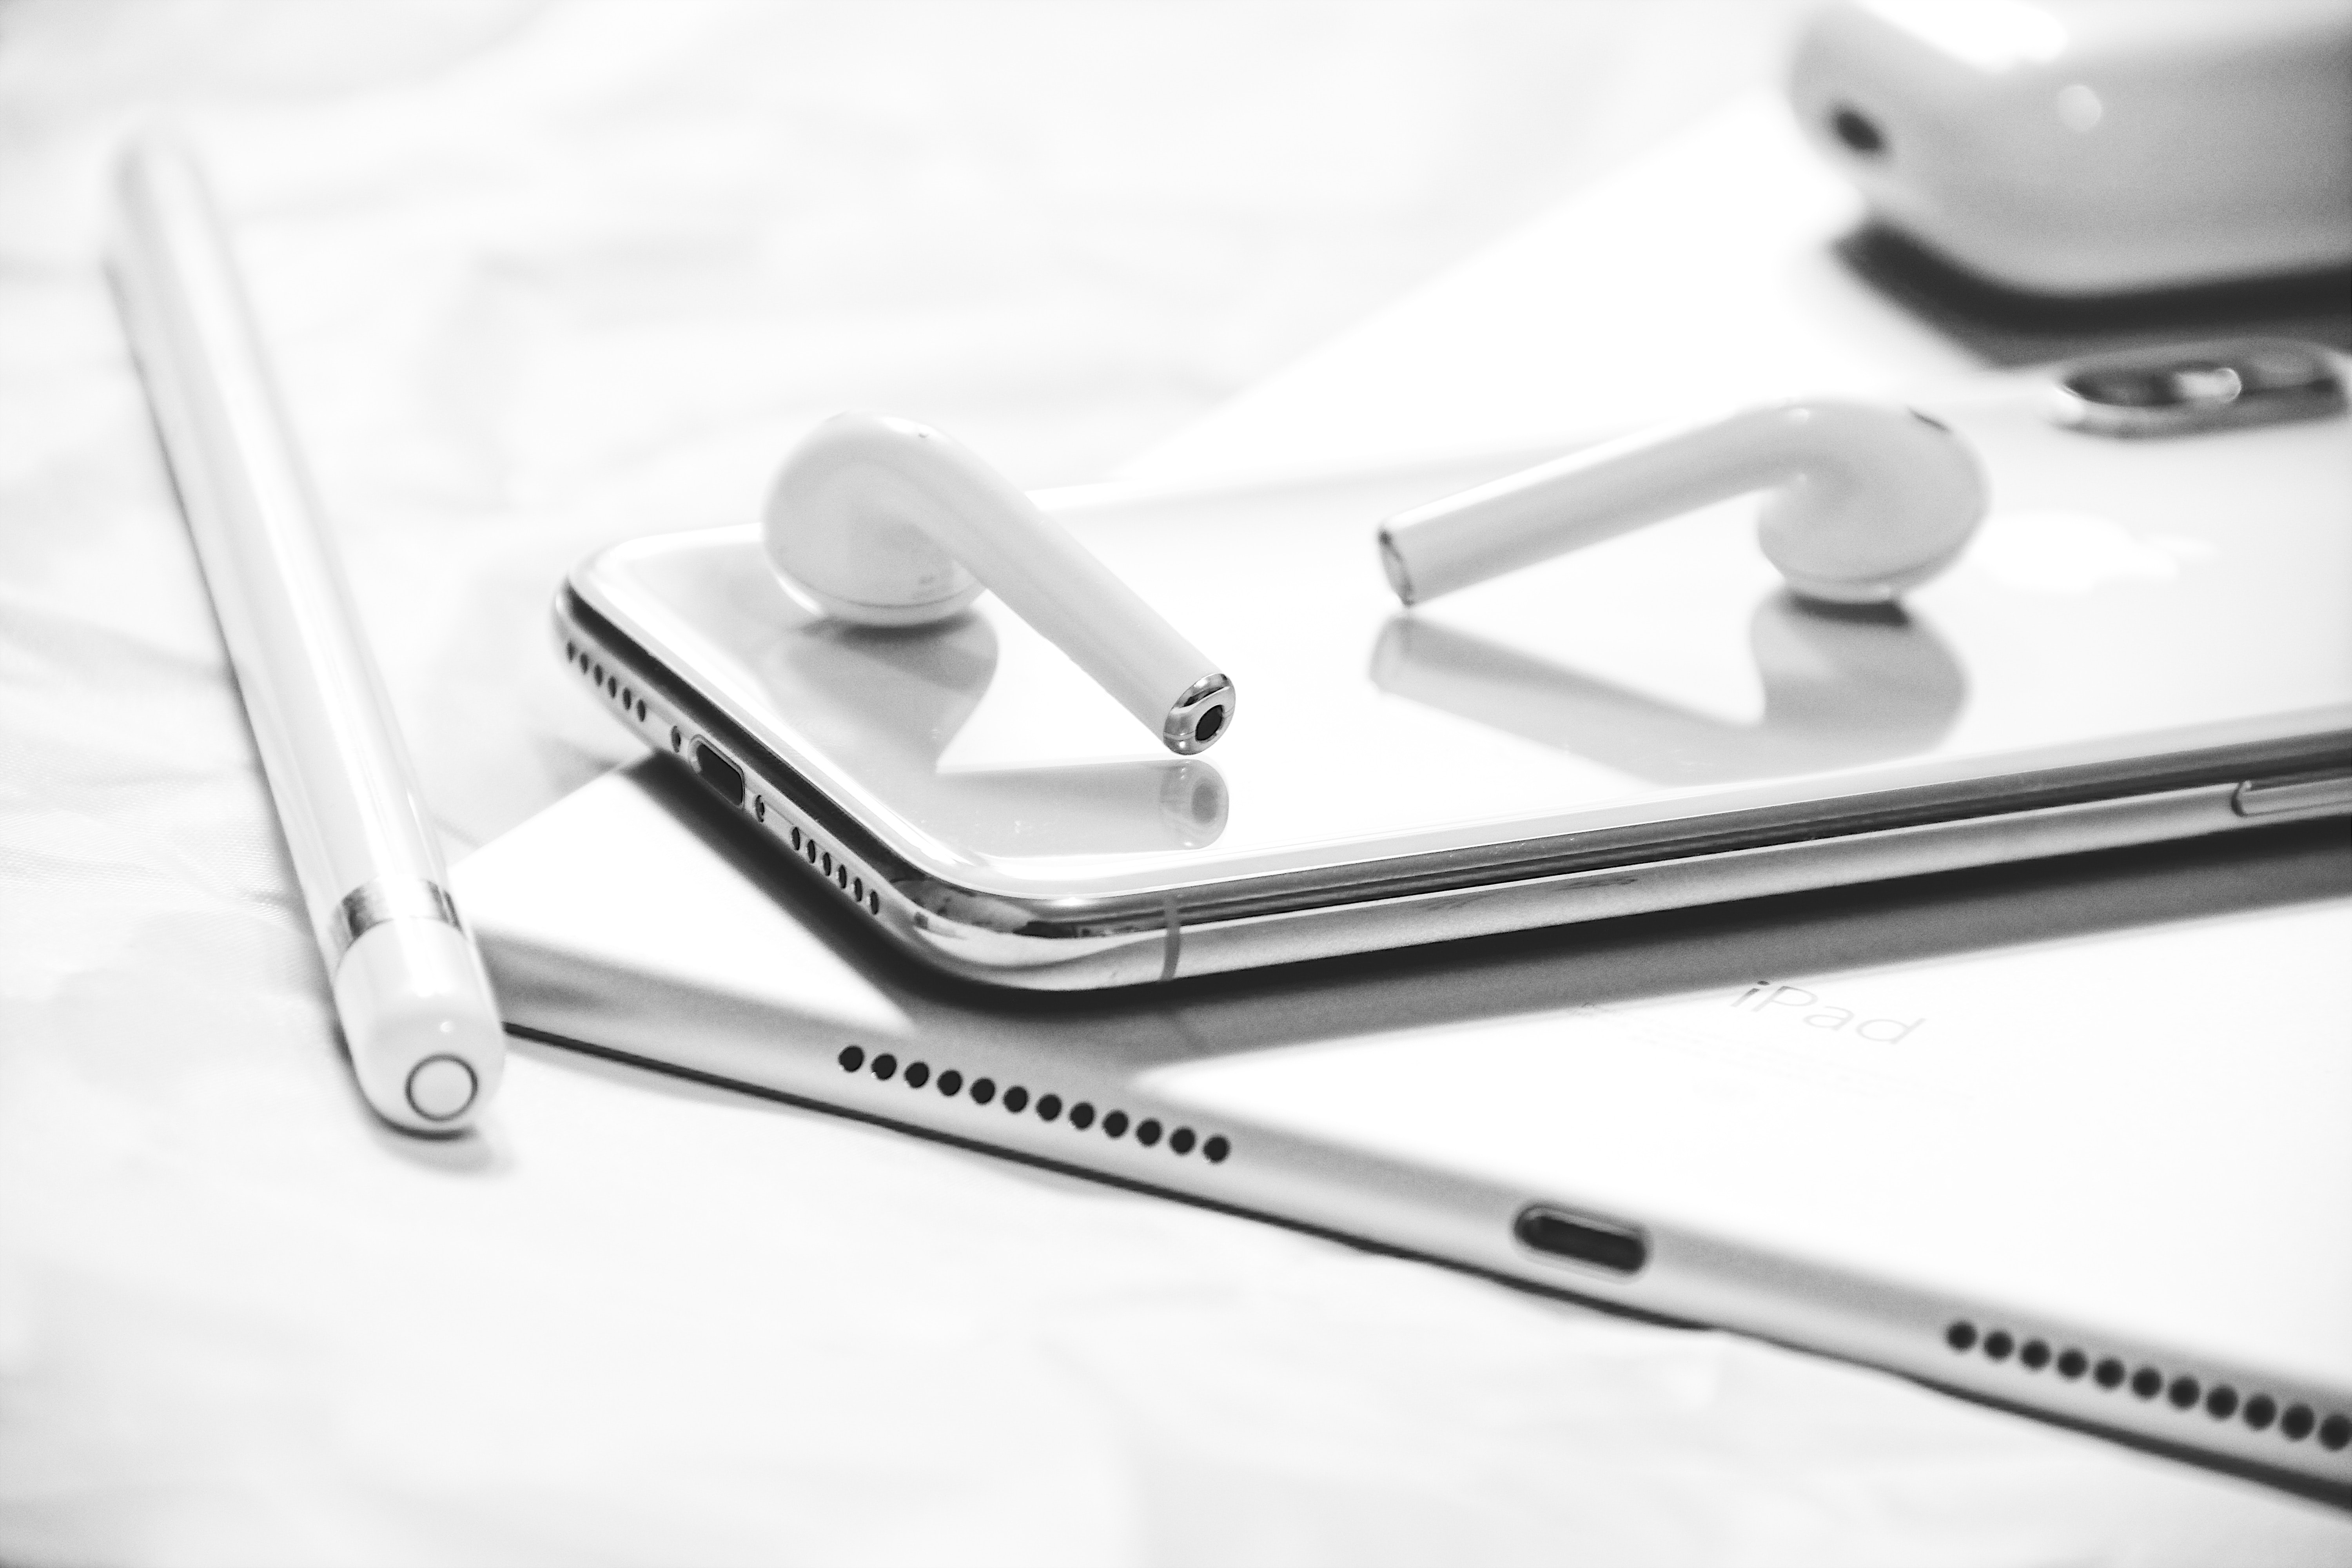 grayscale photography of iPhone X, AirPods, Apple Pencil and iPad